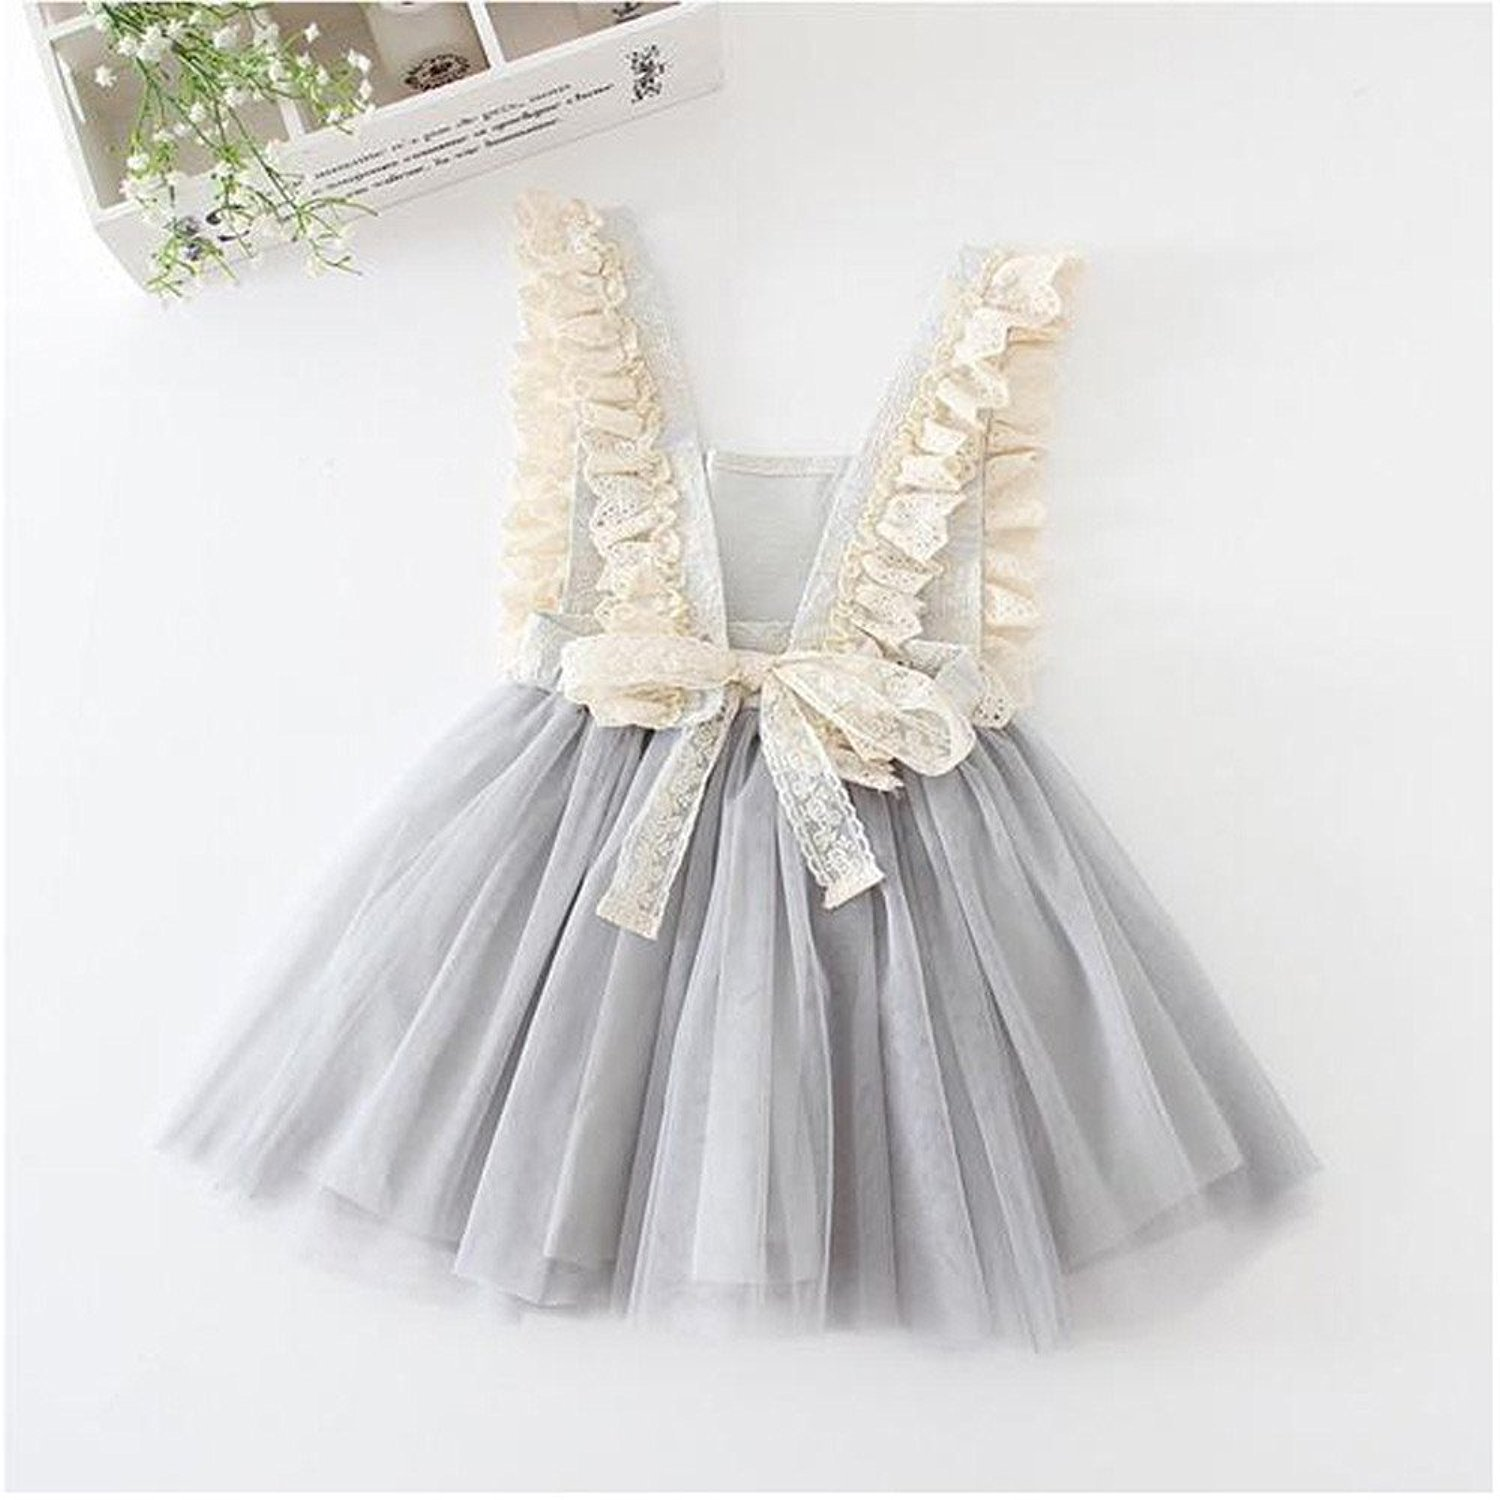 LOliSWan Little Girls Fairy Lace Princess Dress Ruffles Ballerina Tulle Tutu Toddlers Dress Up Outfits For Wedding Party (Gray, 3T) by LOliSWan (Image #4)